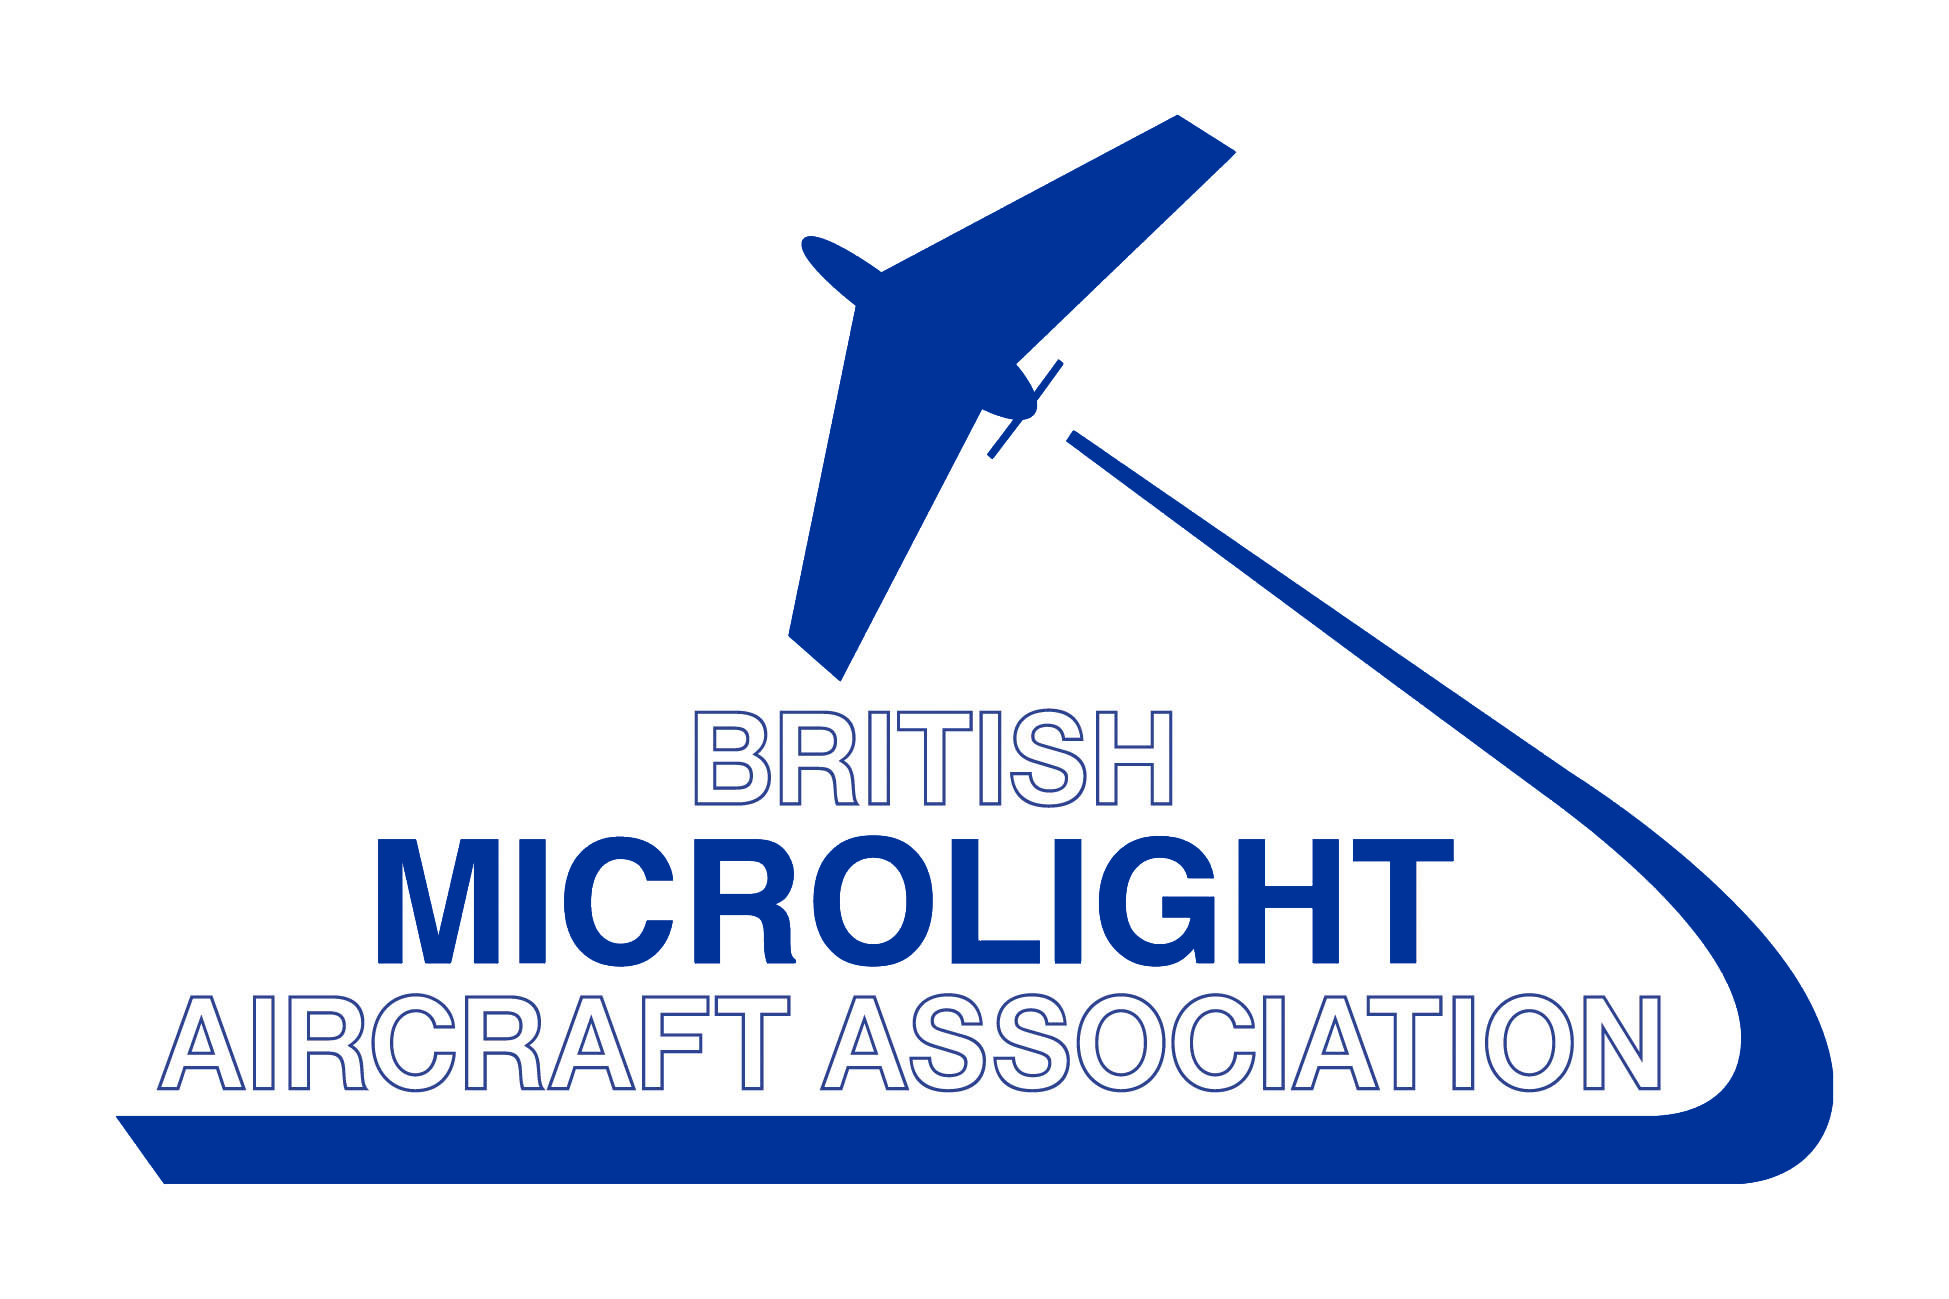 This club supports the British Microlight Aircraft Association. Click the link to find out more